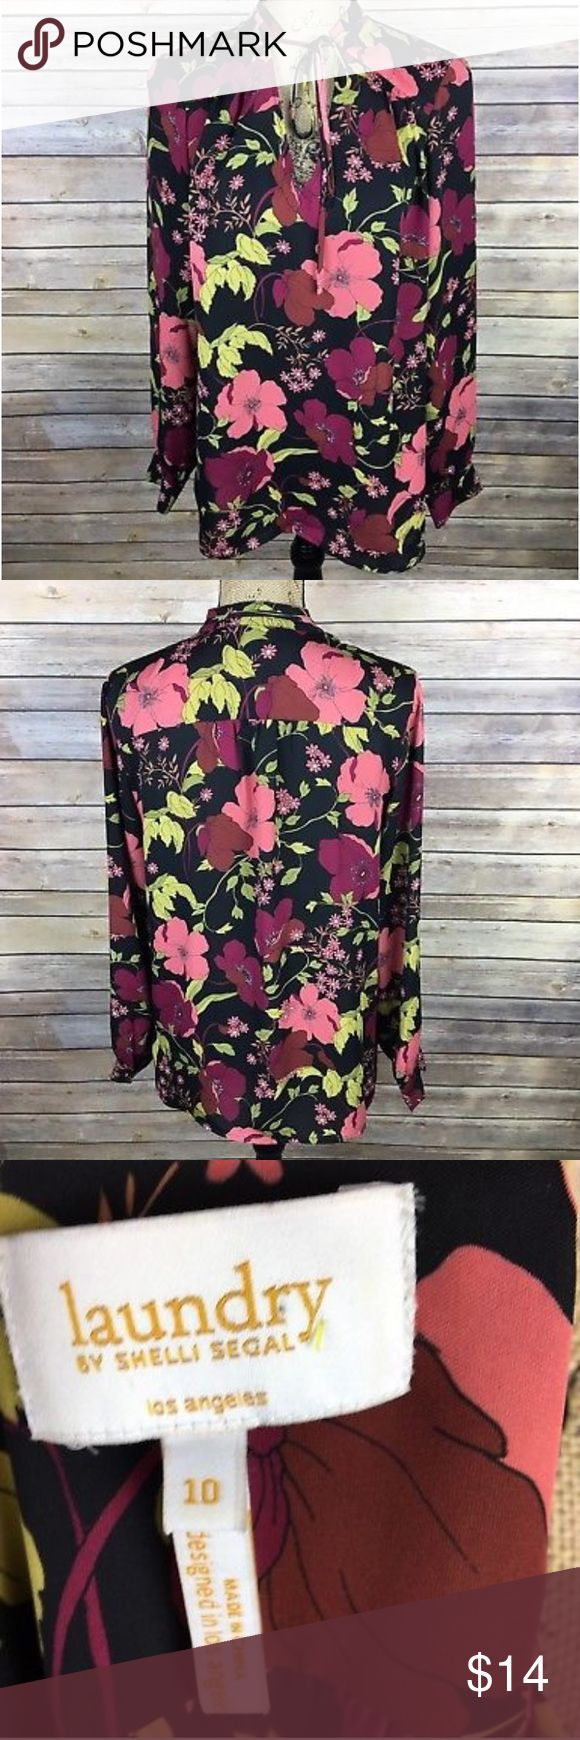 Laundry Shelli Segal Sz 10 Black Maroon Blouse Pre-owned Laundry by Shelli Segal Women's Blouse Size 10 Black Maroon Green Floral V-Neck. Tie neckline, long sleeve.  *Bust is 20.5 inches laying flat. *Length is 27 inches from shoulder to bottom hem. Laundry By Shelli Segal Tops Blouses